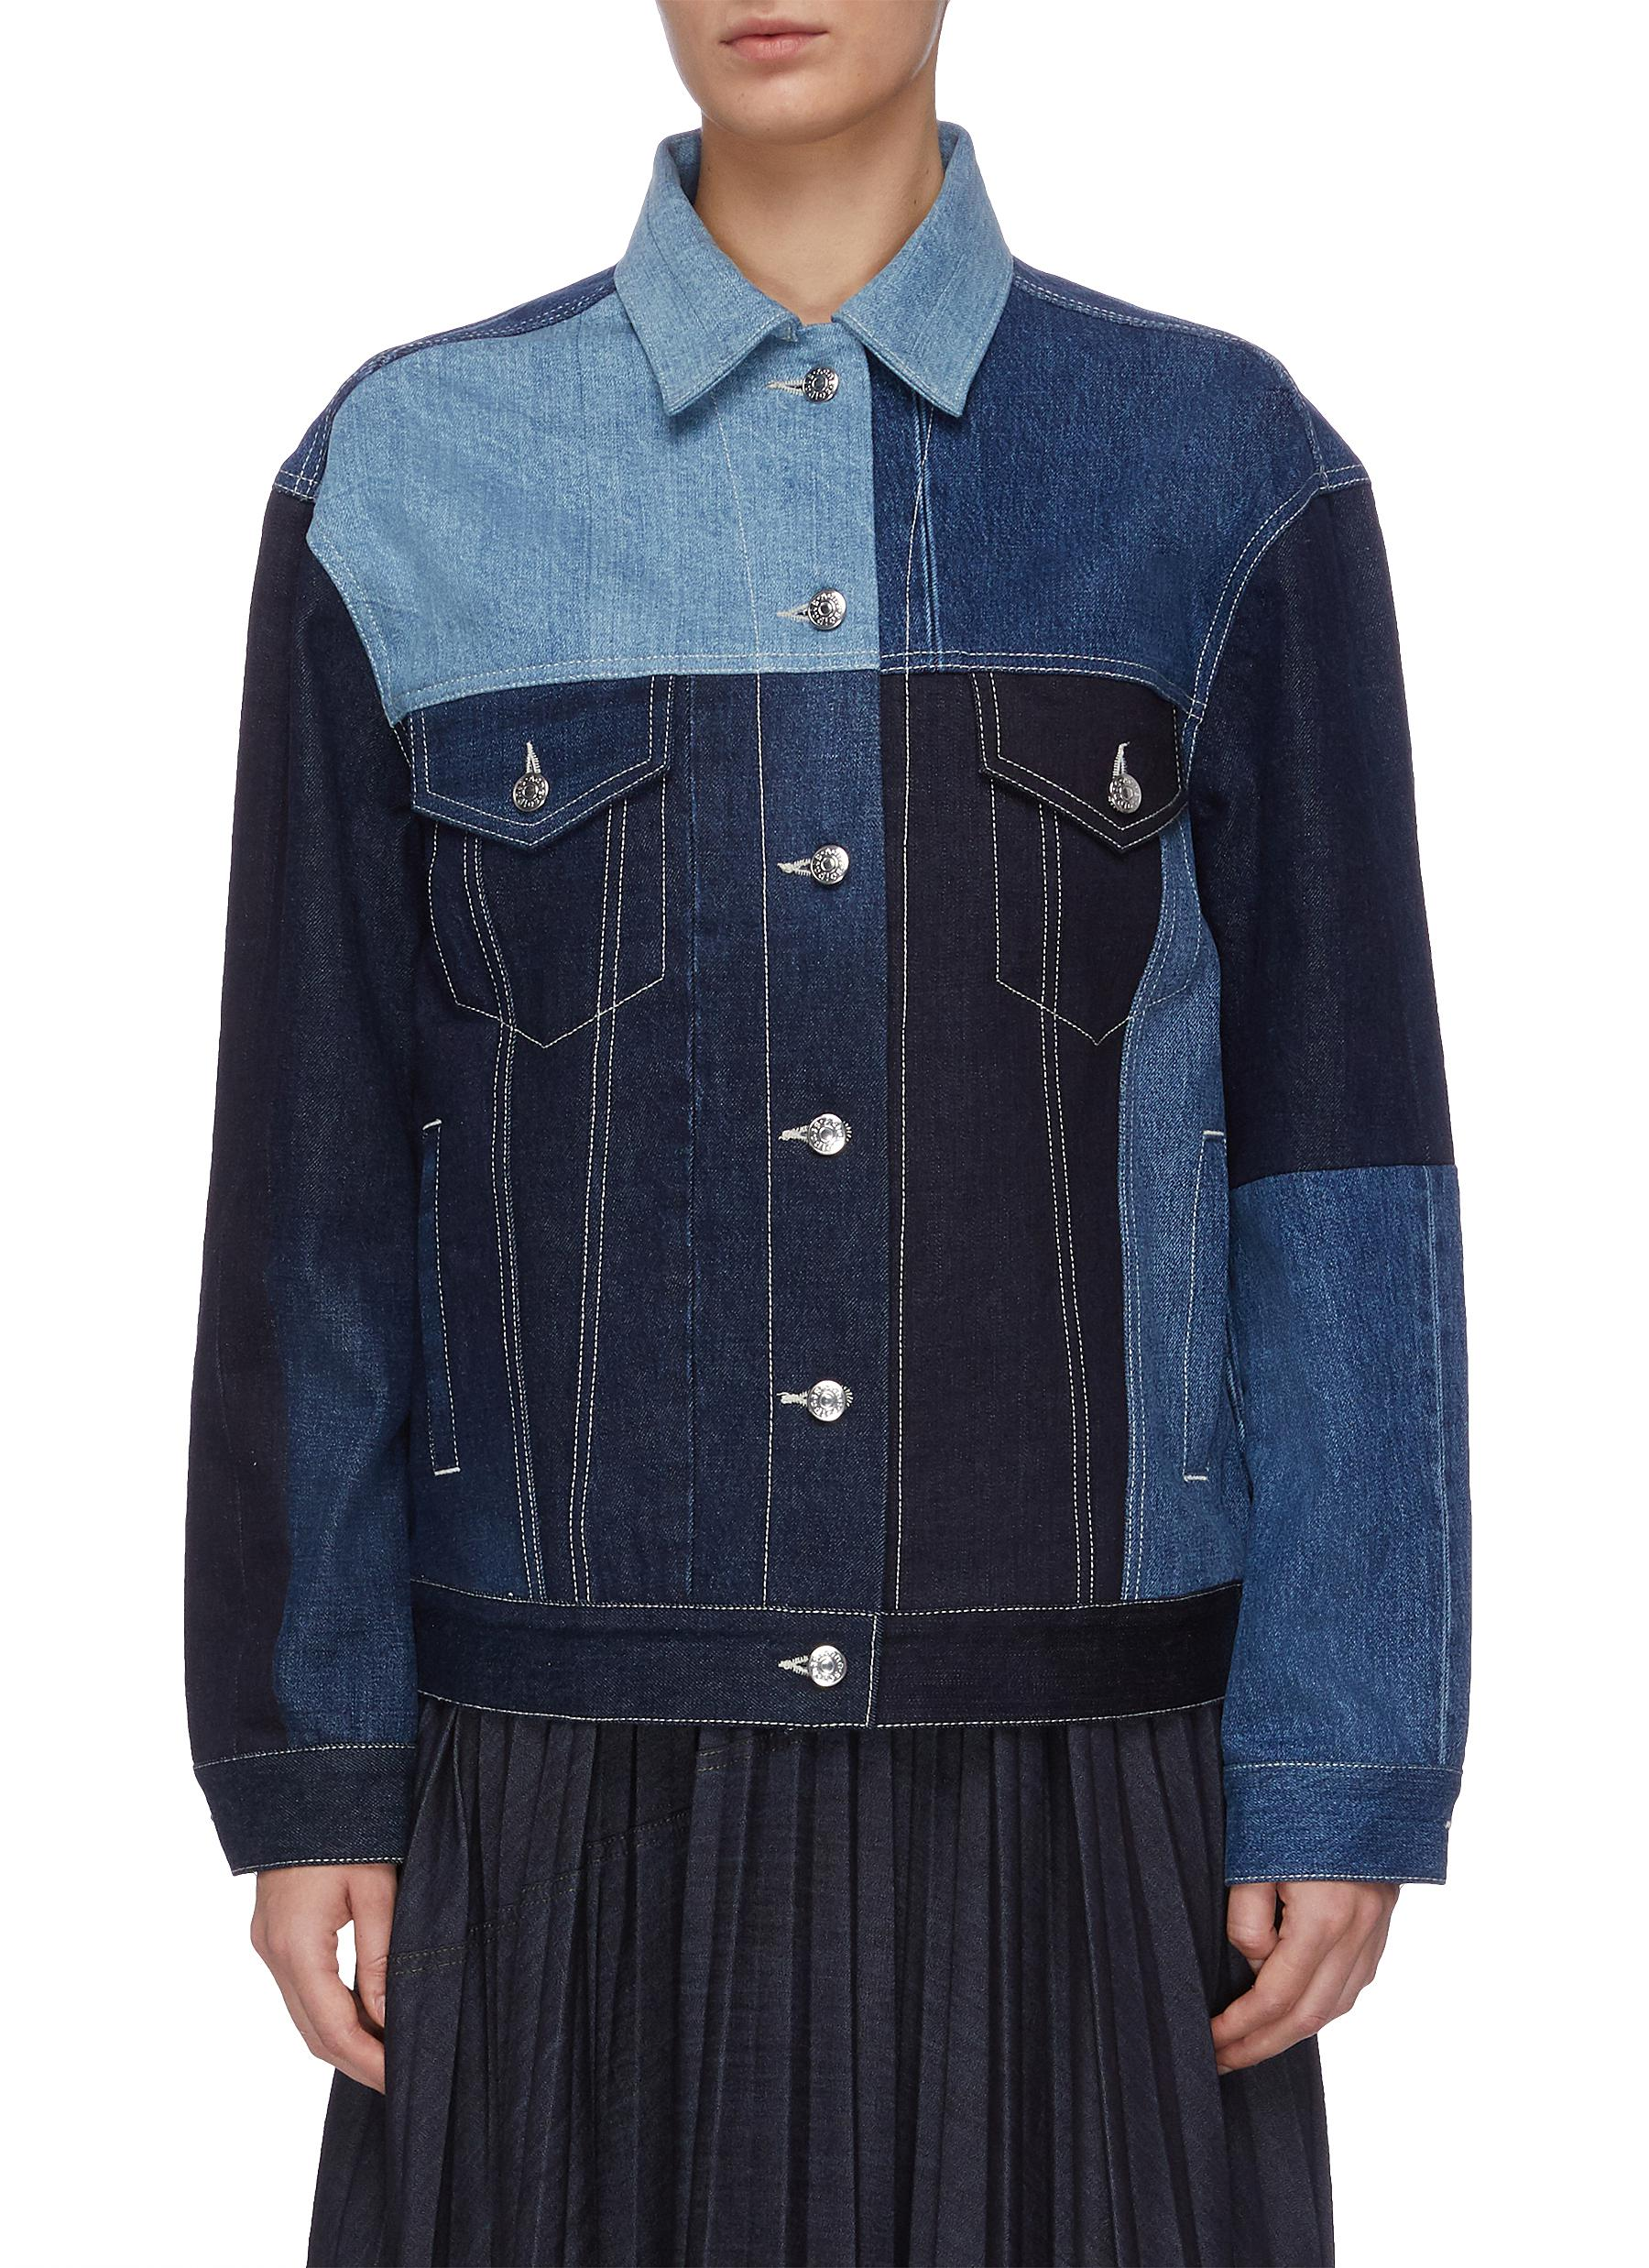 Panelled denim jacket by Acne Studios